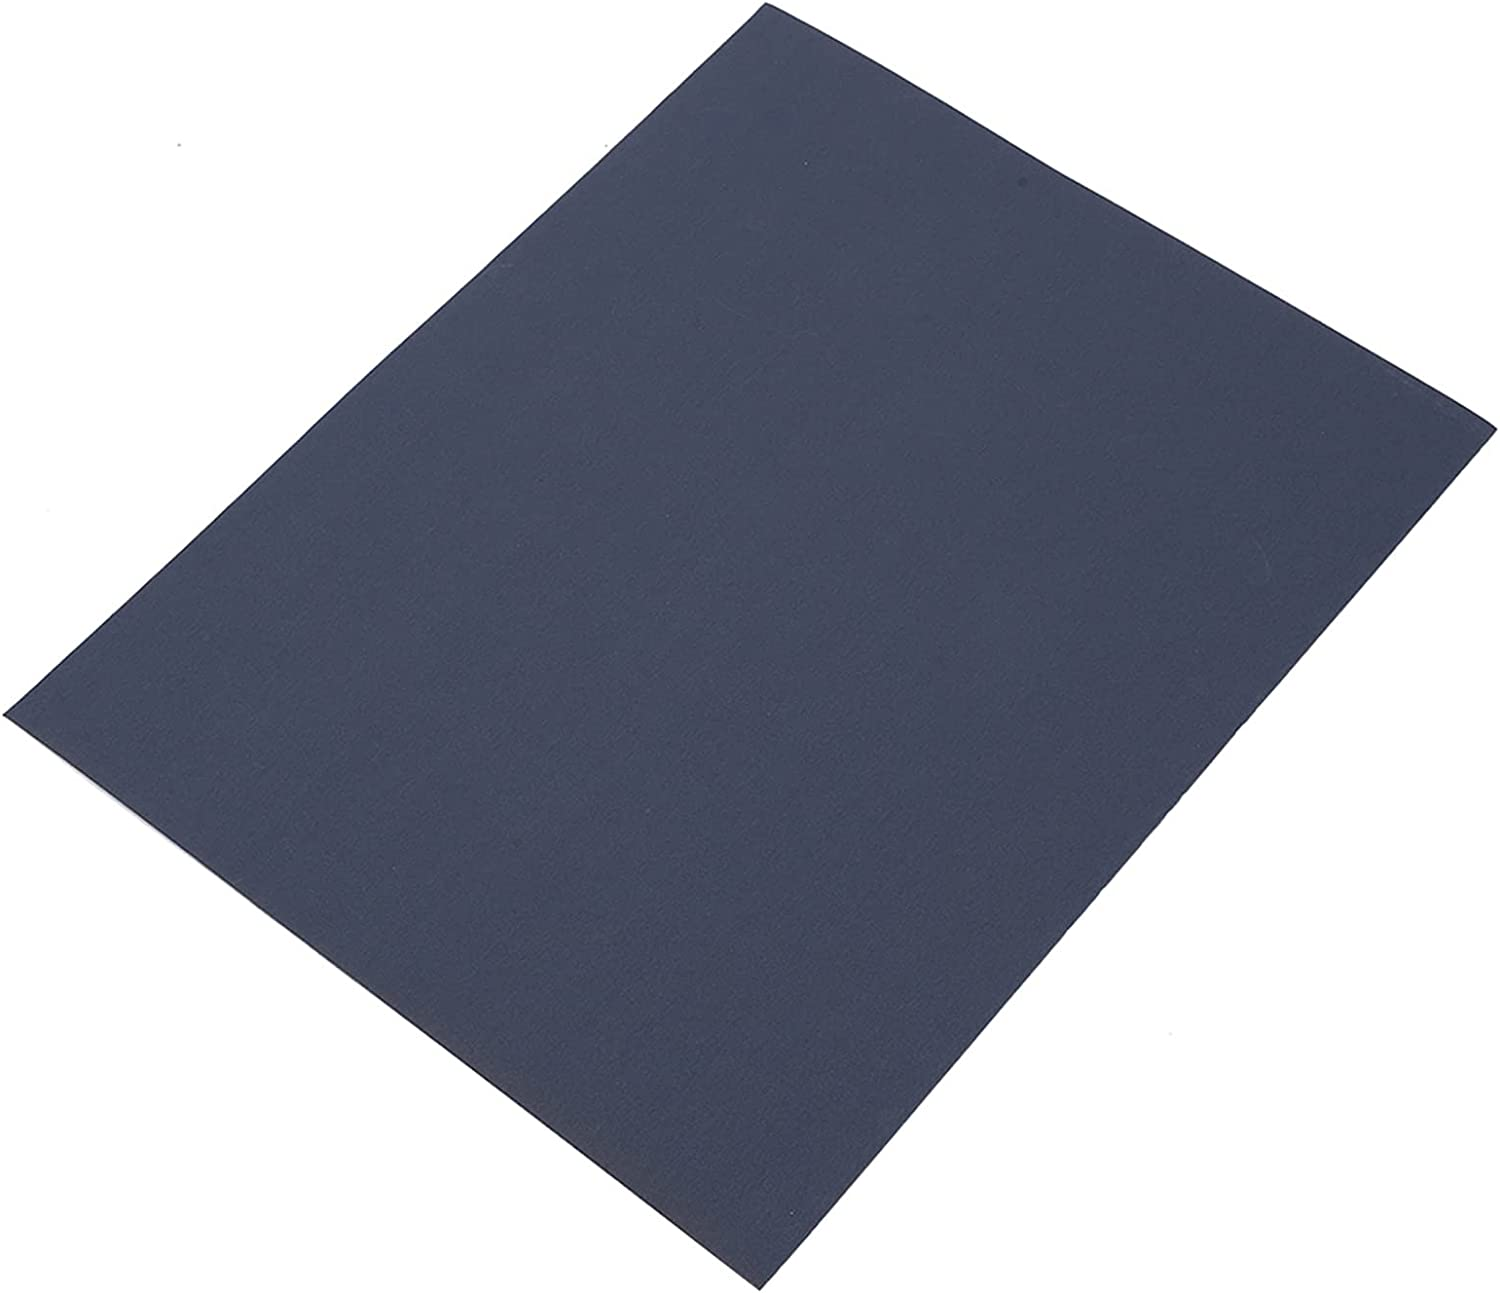 Sandpaper New Shipping Free 100Pcs 280-3000 Grits Outlet ☆ Free Shipping Wet Use Dry Sheet Dual